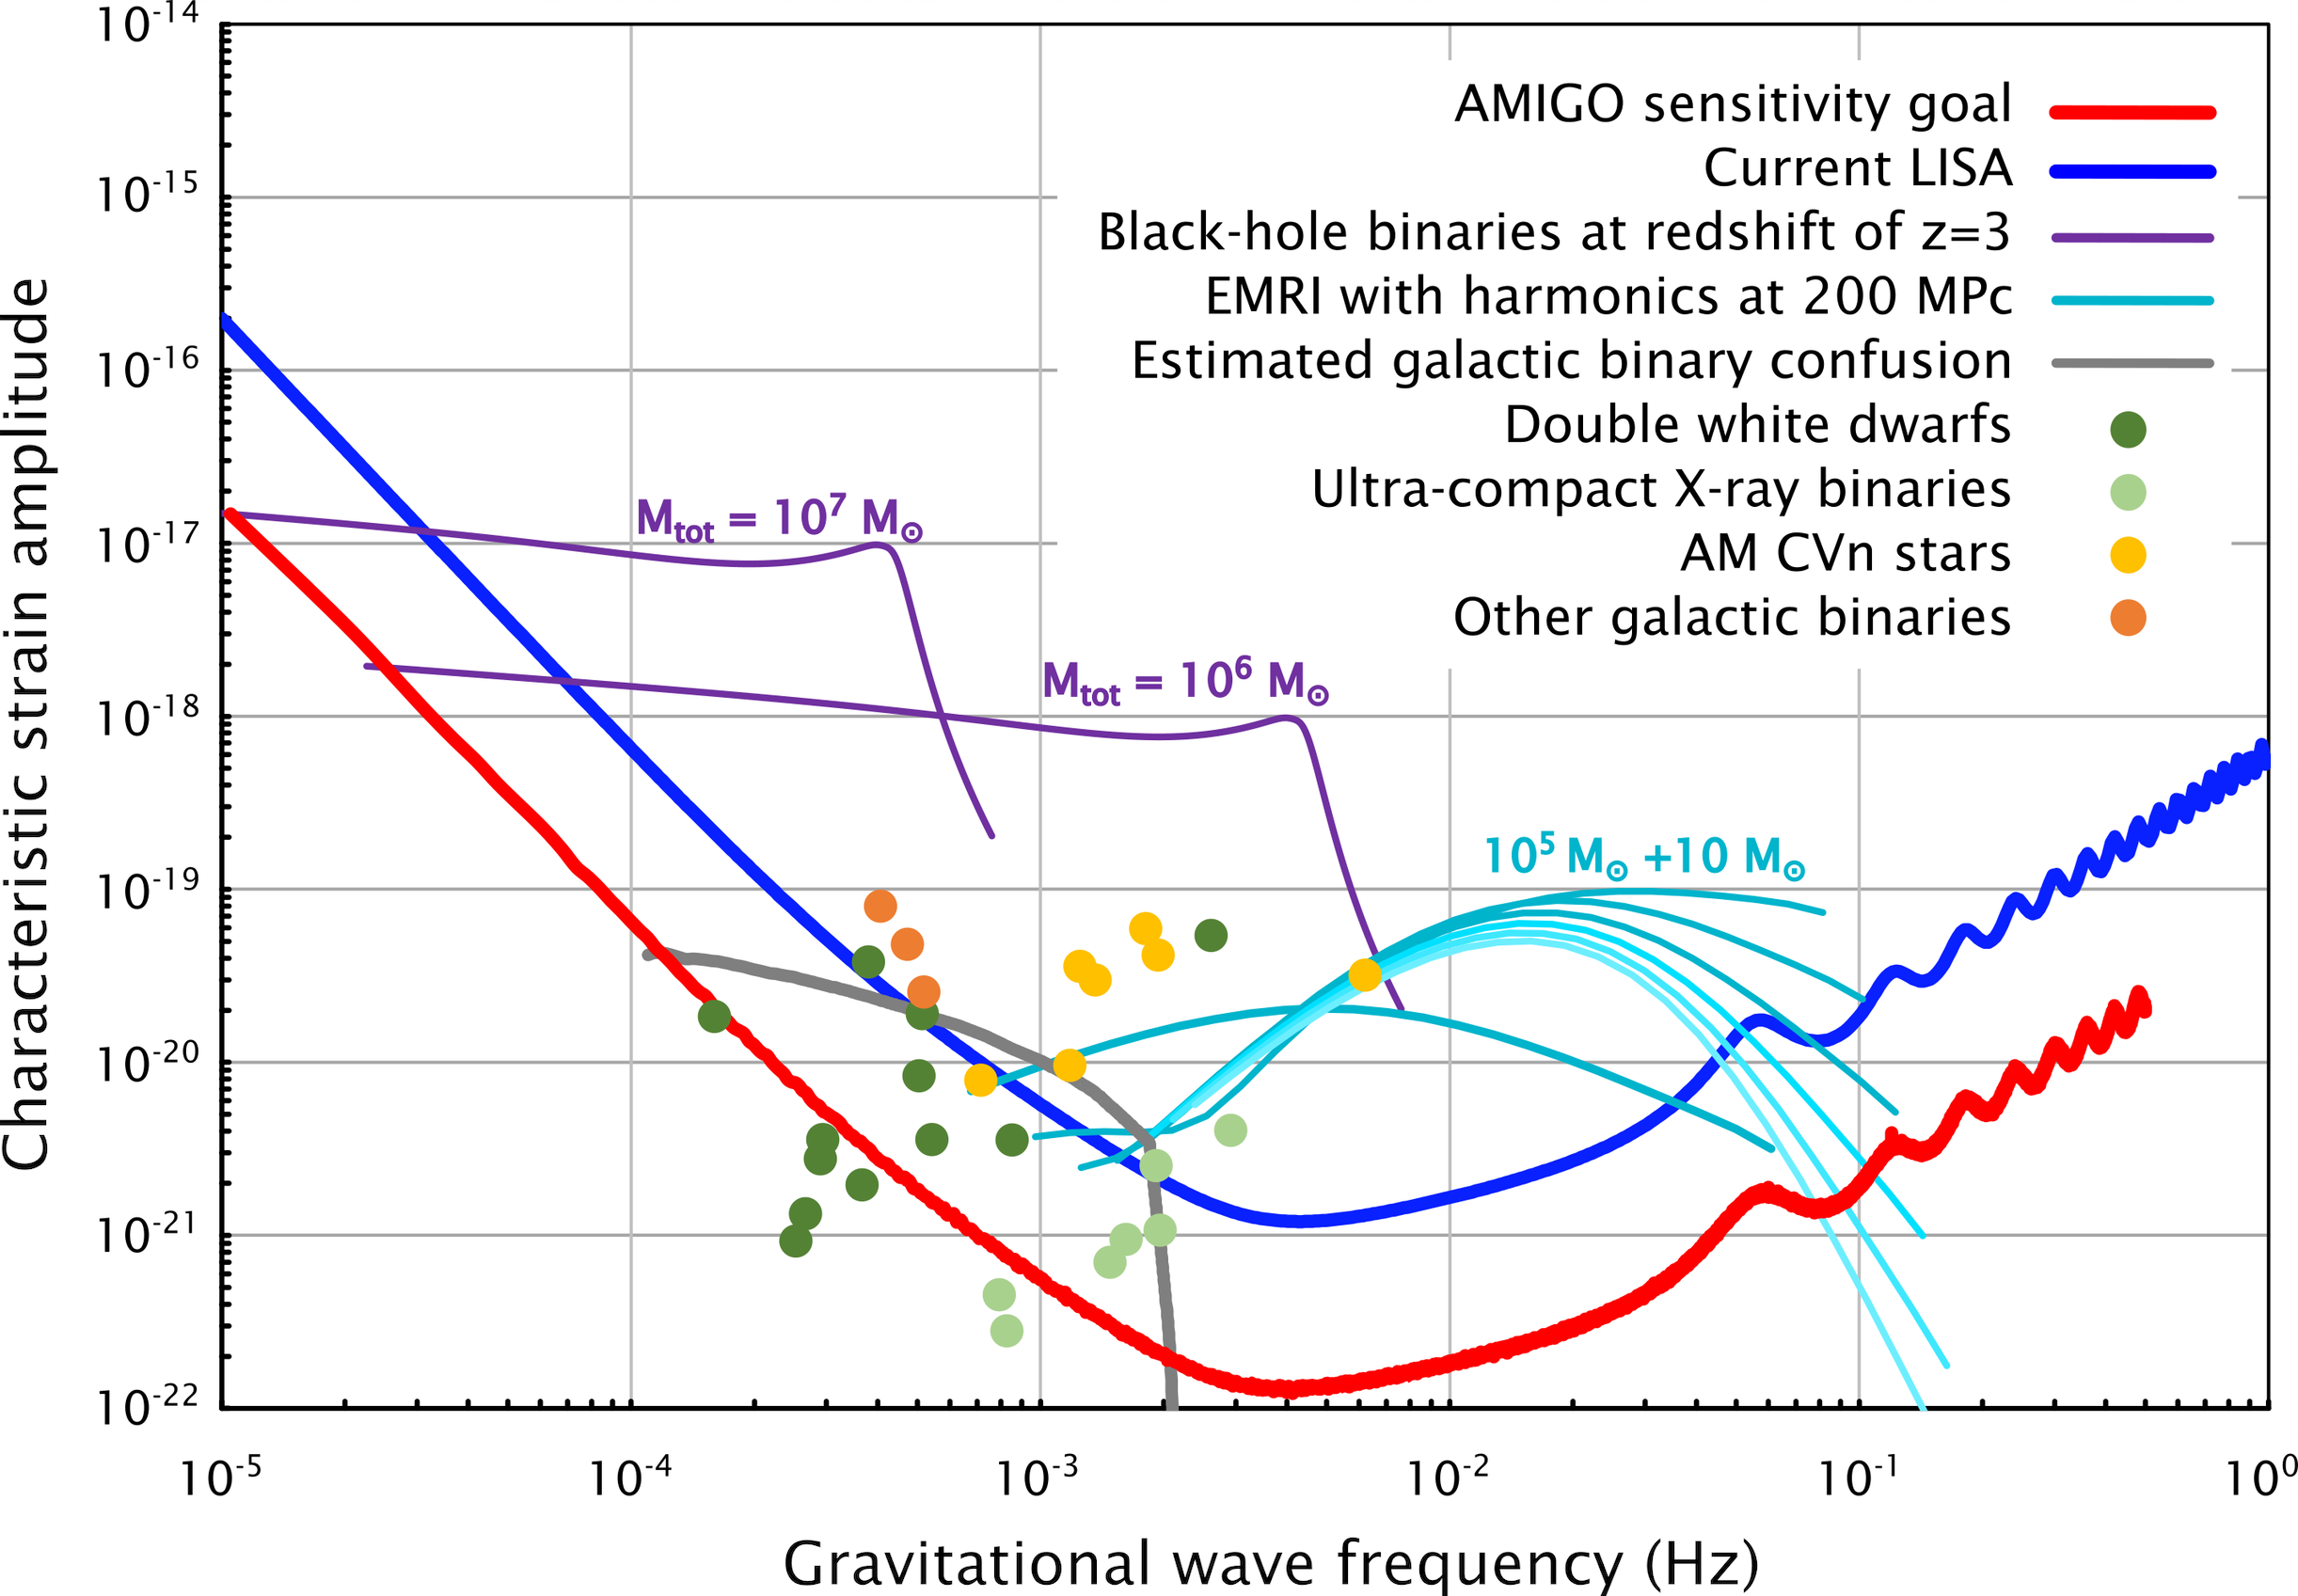 Projected sky-averaged sensitivity curve for AMIGO and possible sources within its range